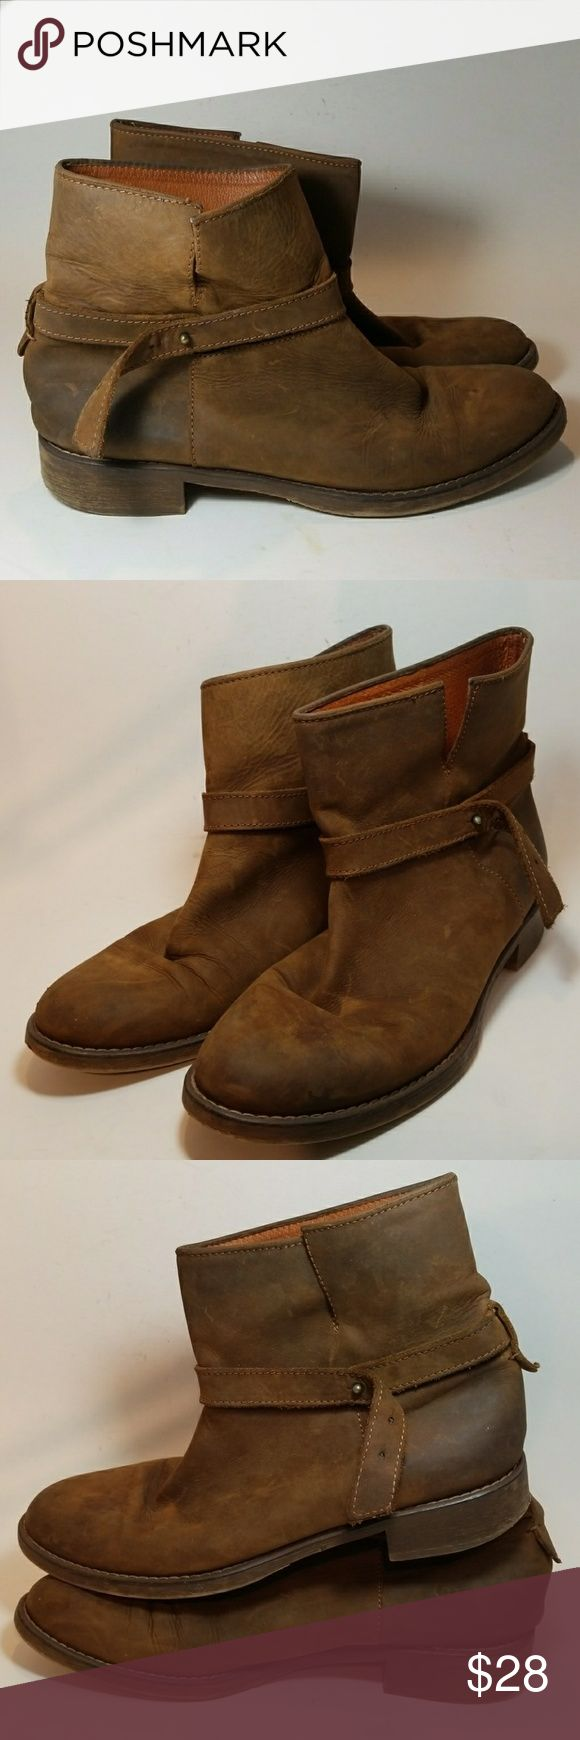 Madewell Women's Leather Ankle Boots Size 9 Genuine leather, pull up, strapped, brown, ankle boots Madewell Shoes Ankle Boots & Booties